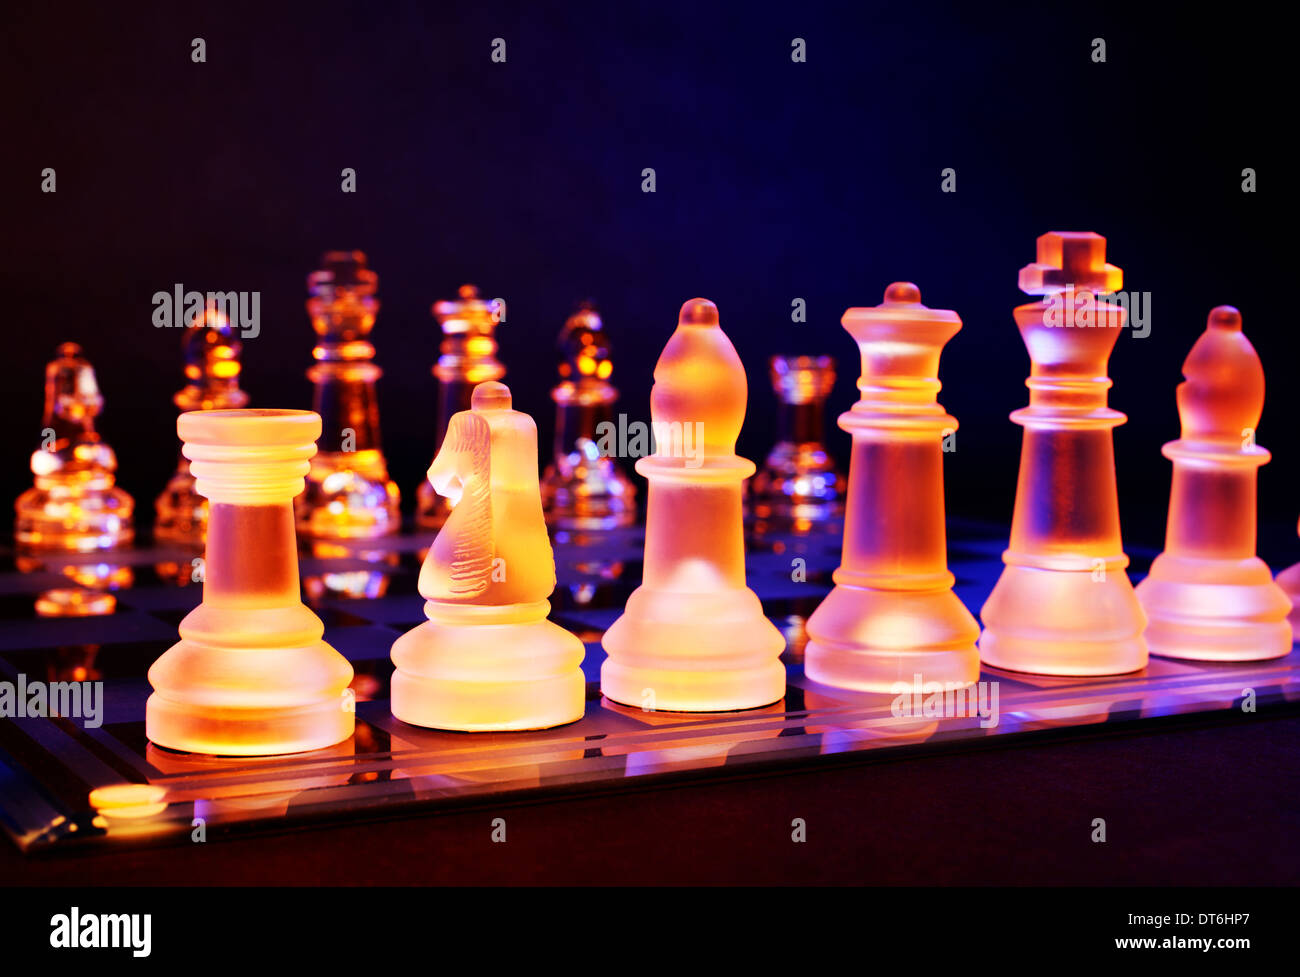 Glass chess on a chessboard lit by a colorful blue and orange light and placed on a glass chessboard - Stock Image